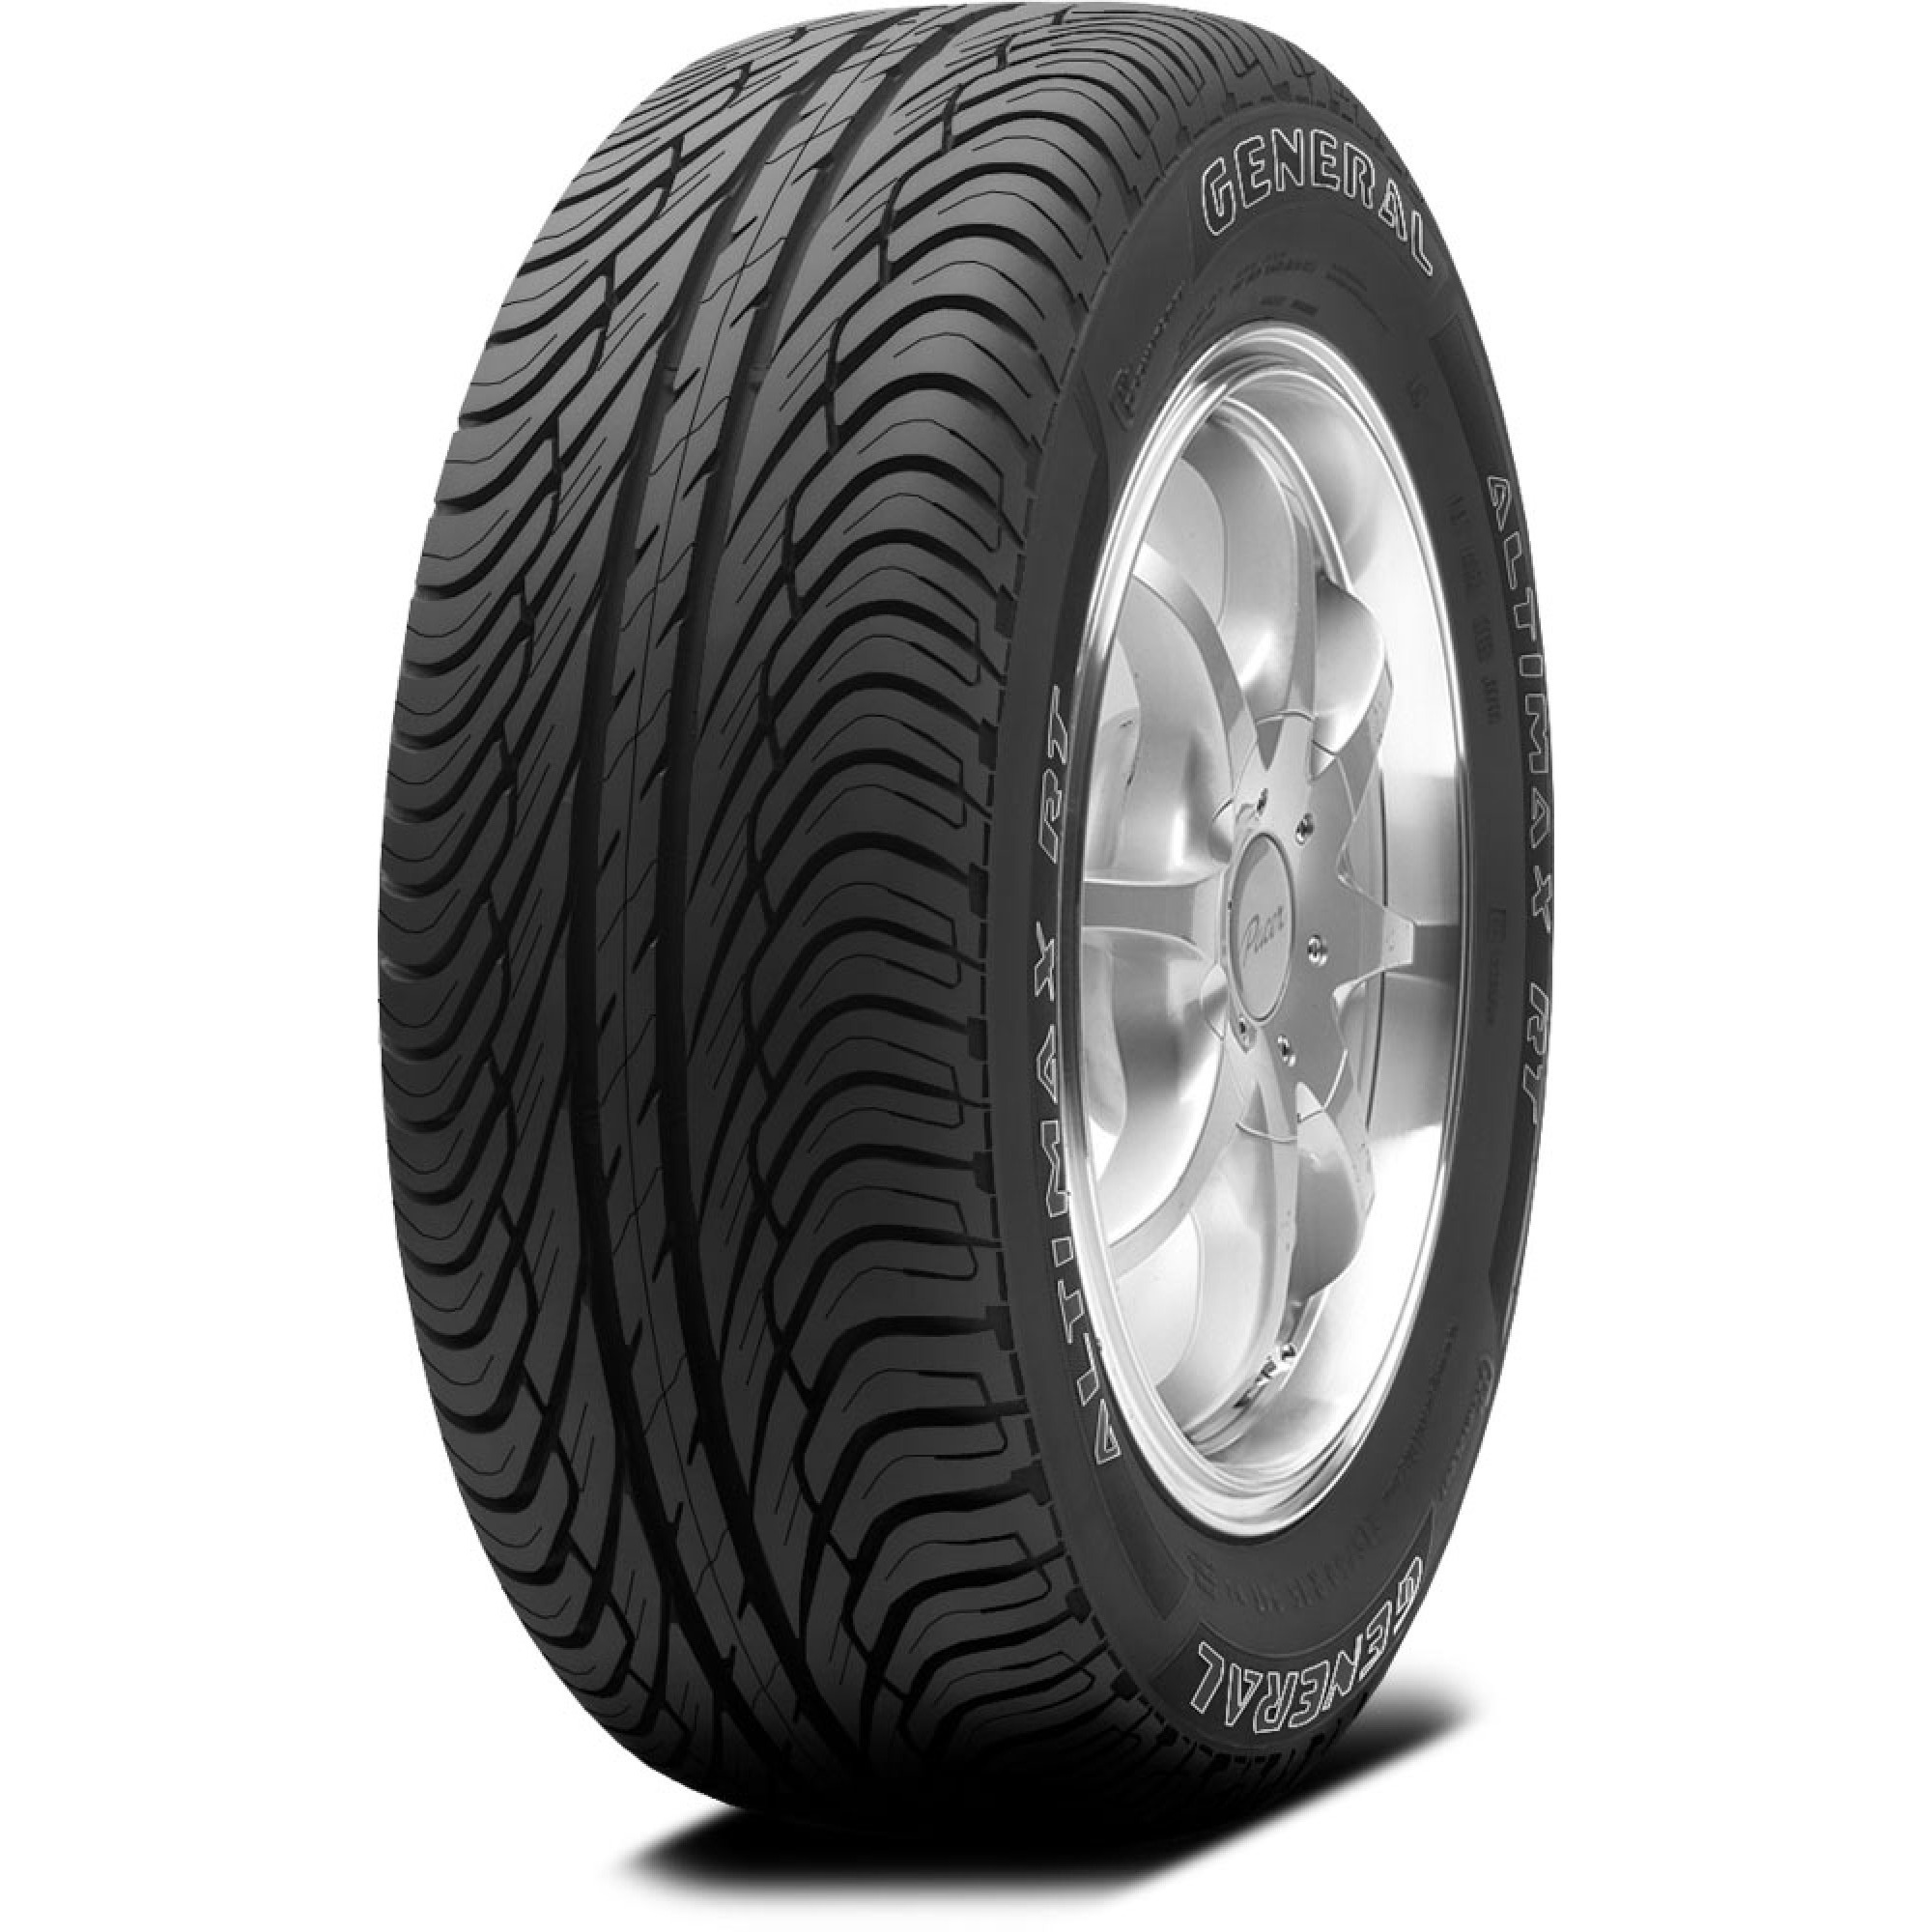 General Altimax Rt Free Delivery Available Tirebuyer Com